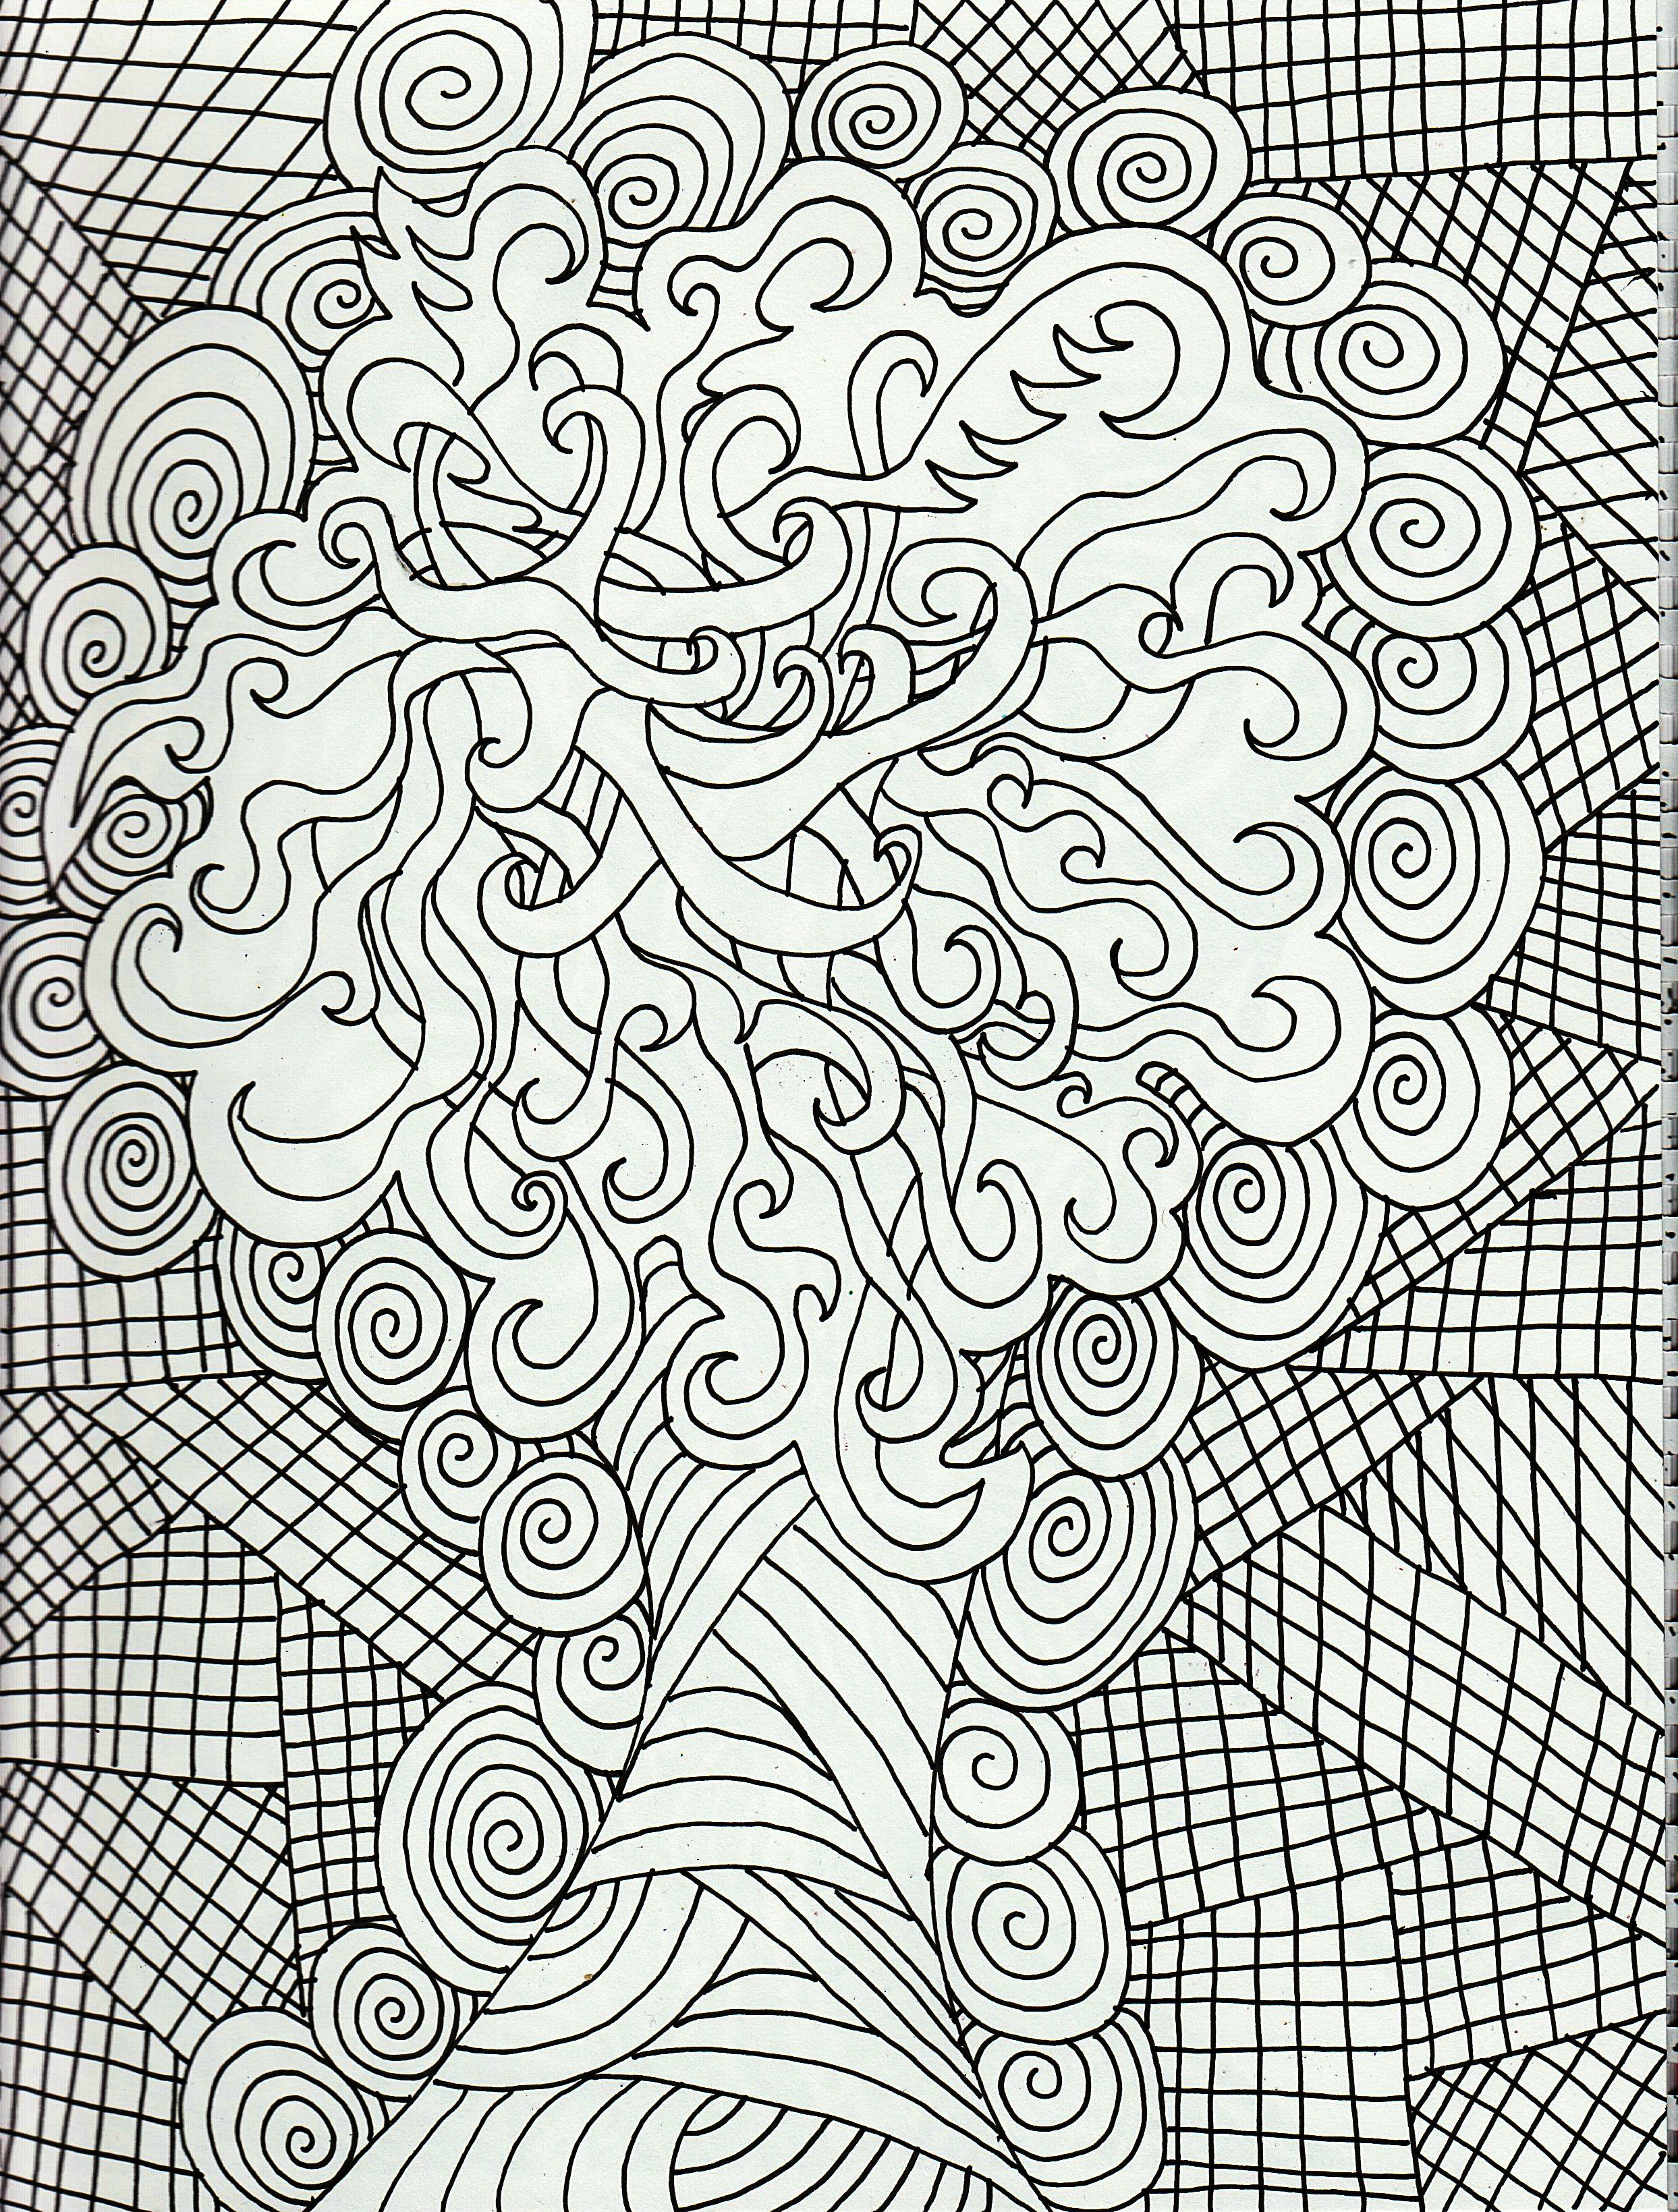 Stress free coloring book - Colouring In For Adults Stress Relief 15